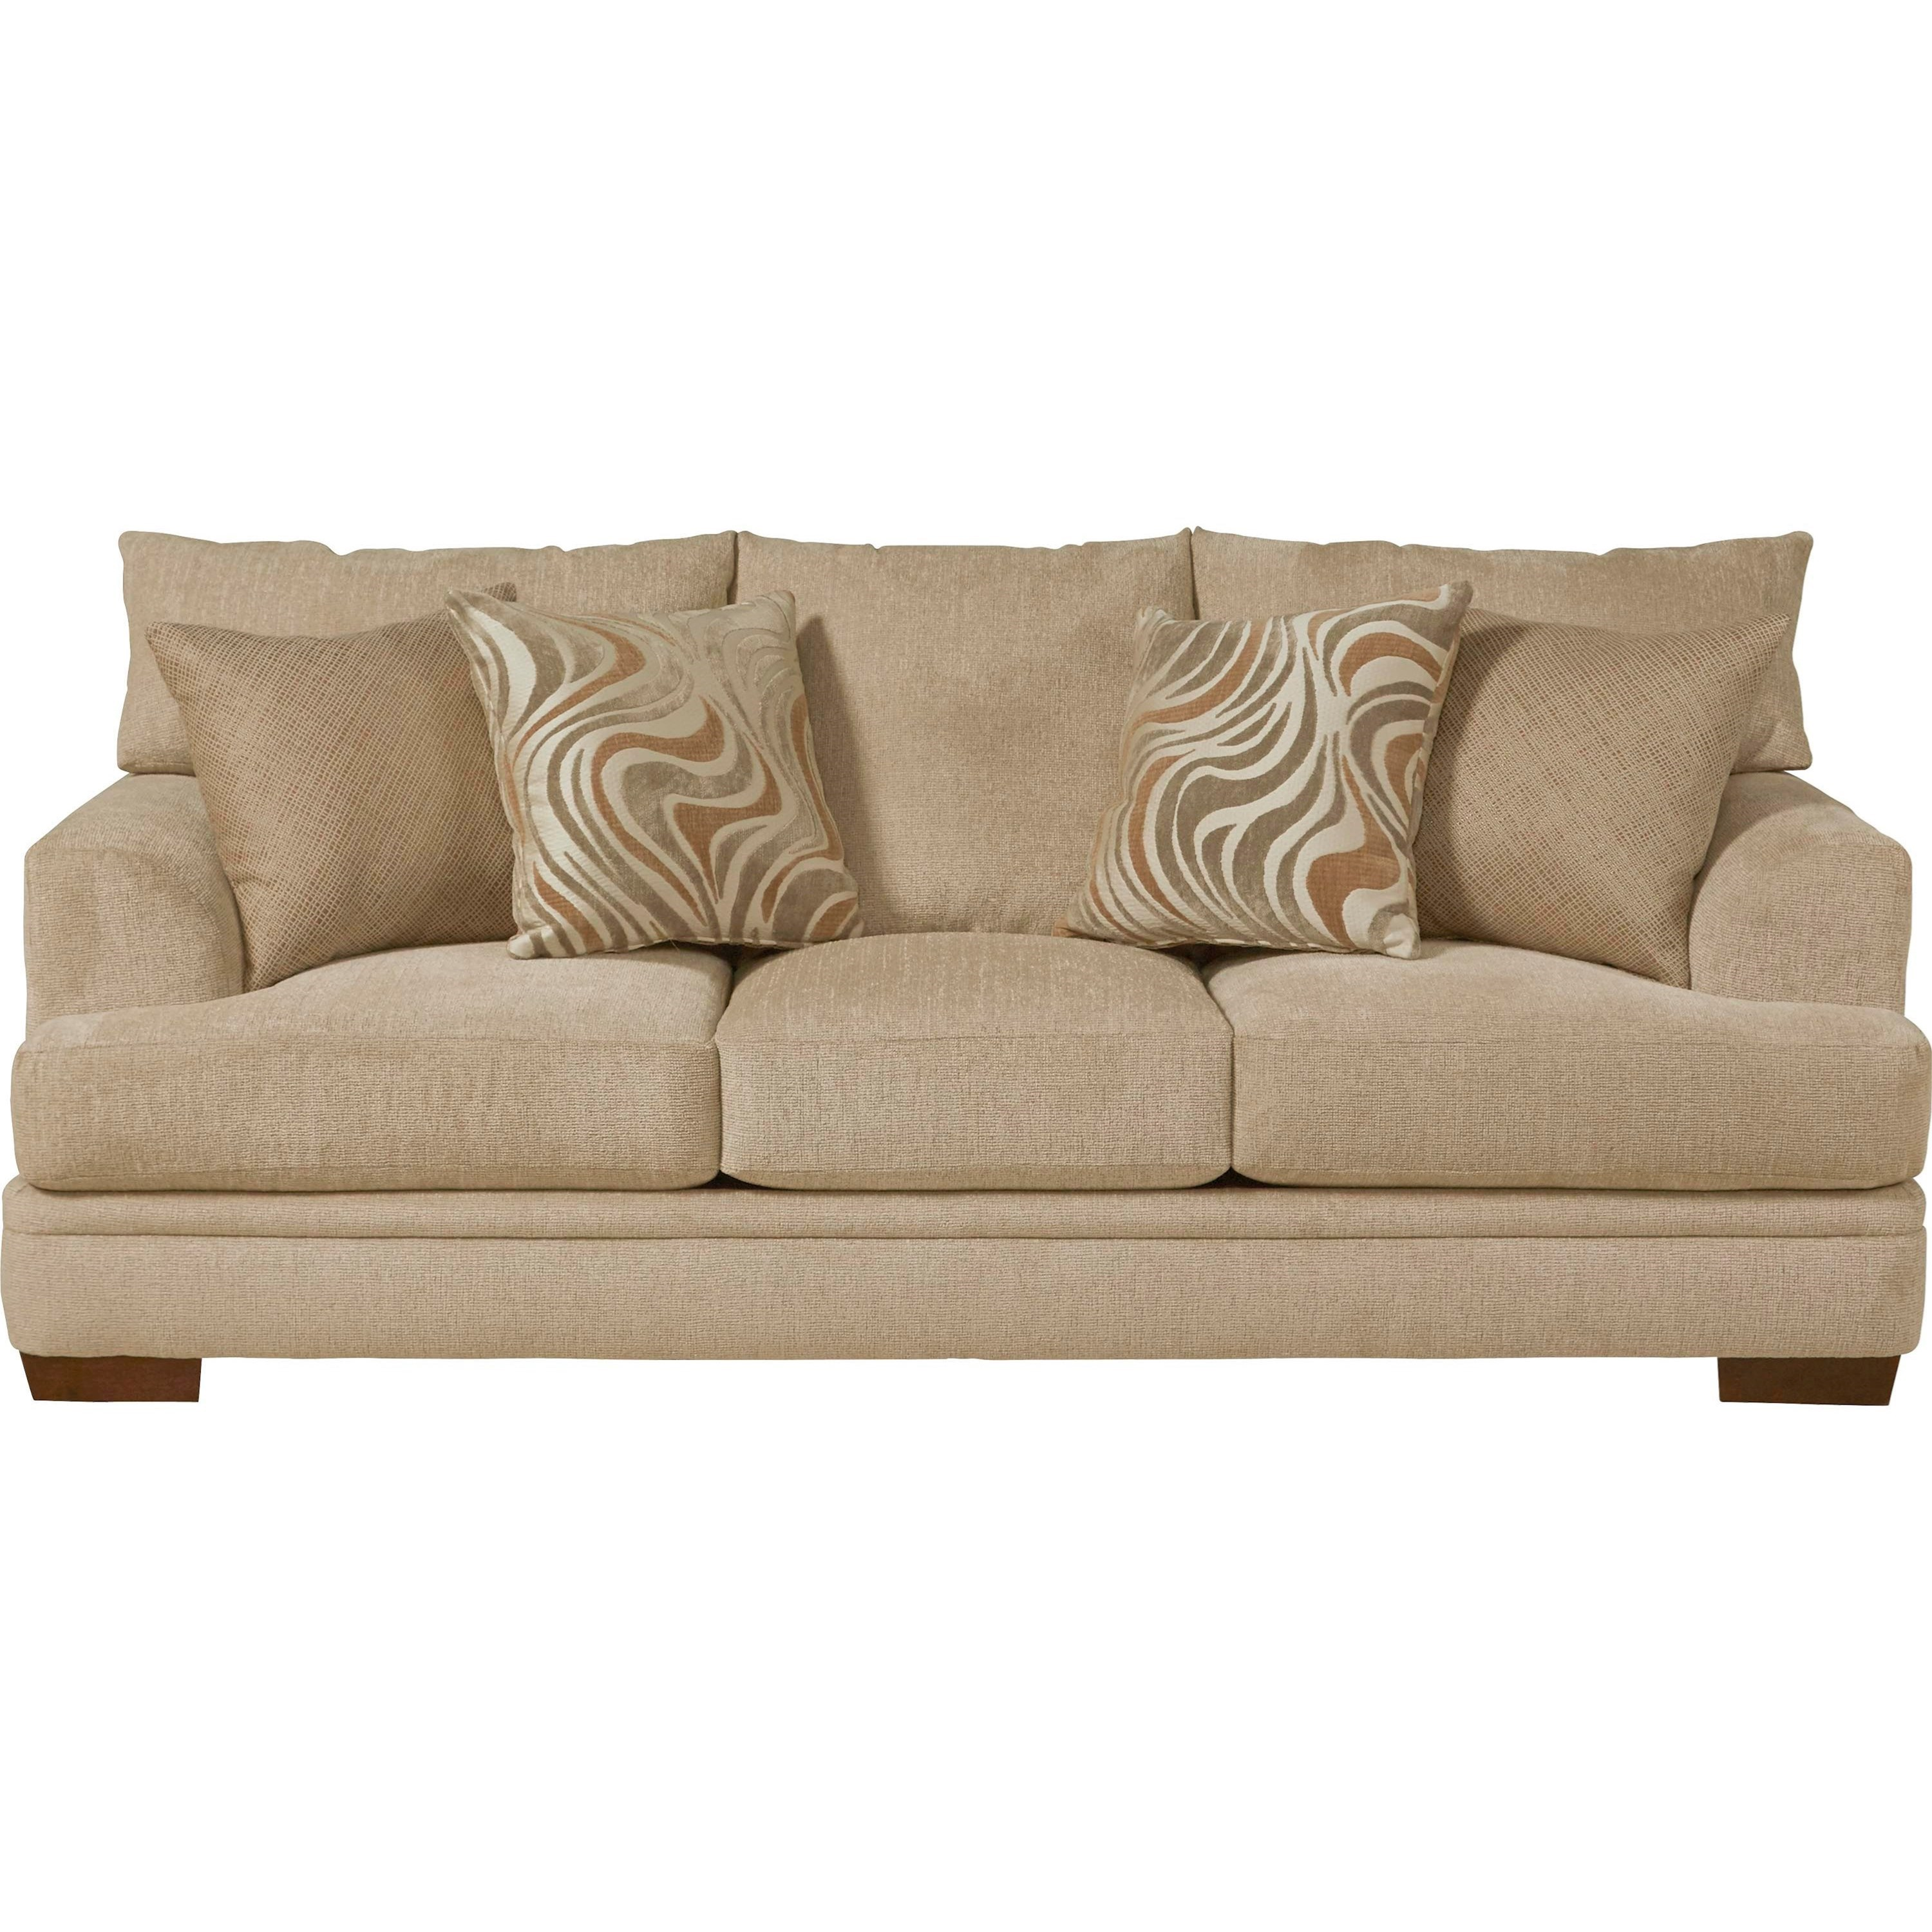 Jackson Furniture Crompton Sofa with Casual Style L Fish